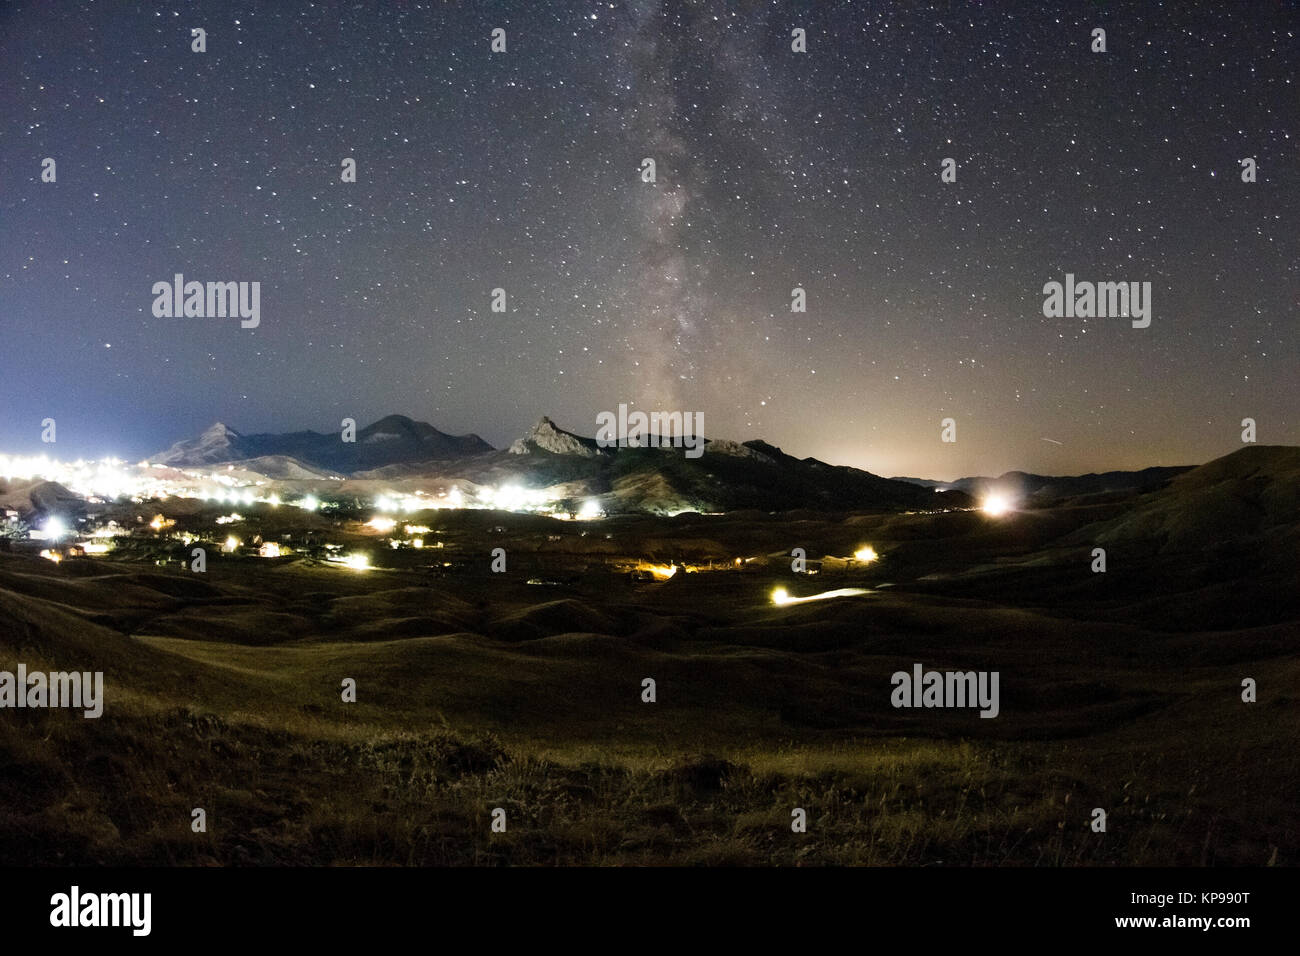 milky way over the mountain valley - Stock Image